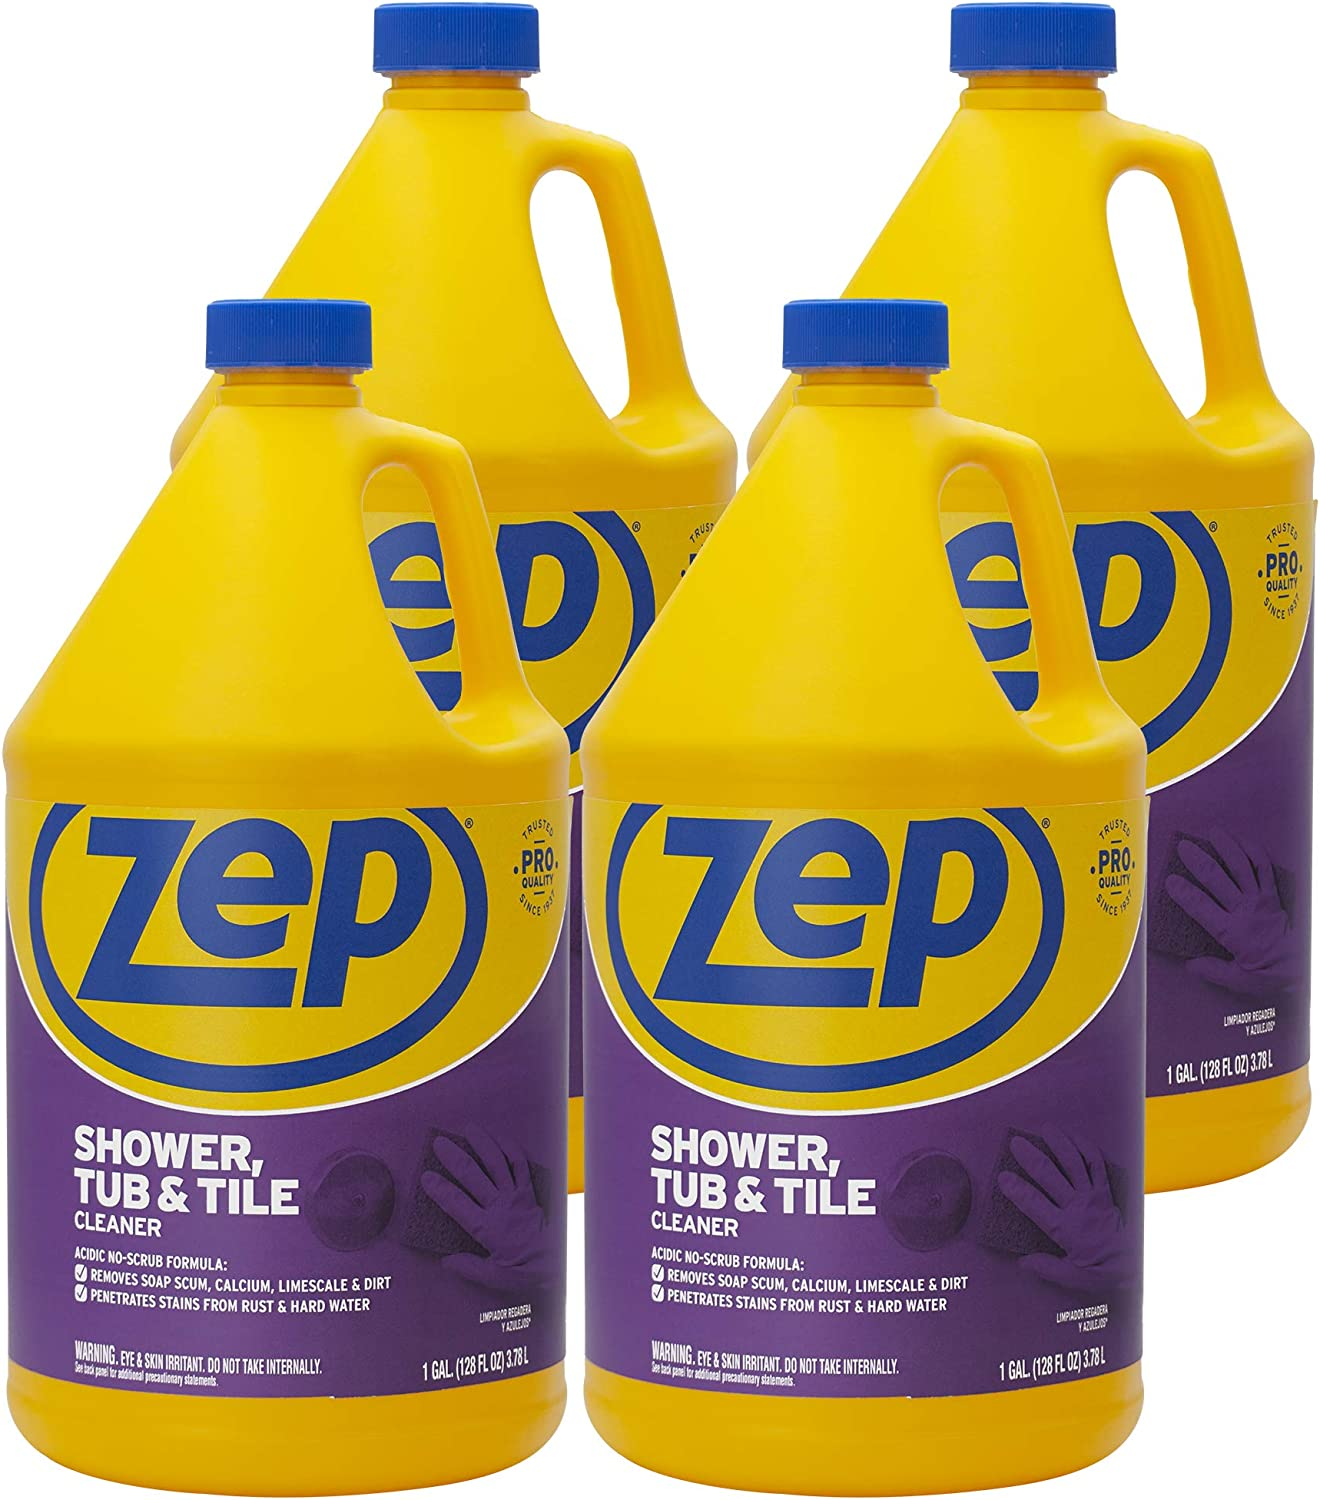 Overseas parallel import regular item Zep Shower Tub and Tile Cleaner Albuquerque Mall 1 4 Gallon ZUSTT128 - of Case